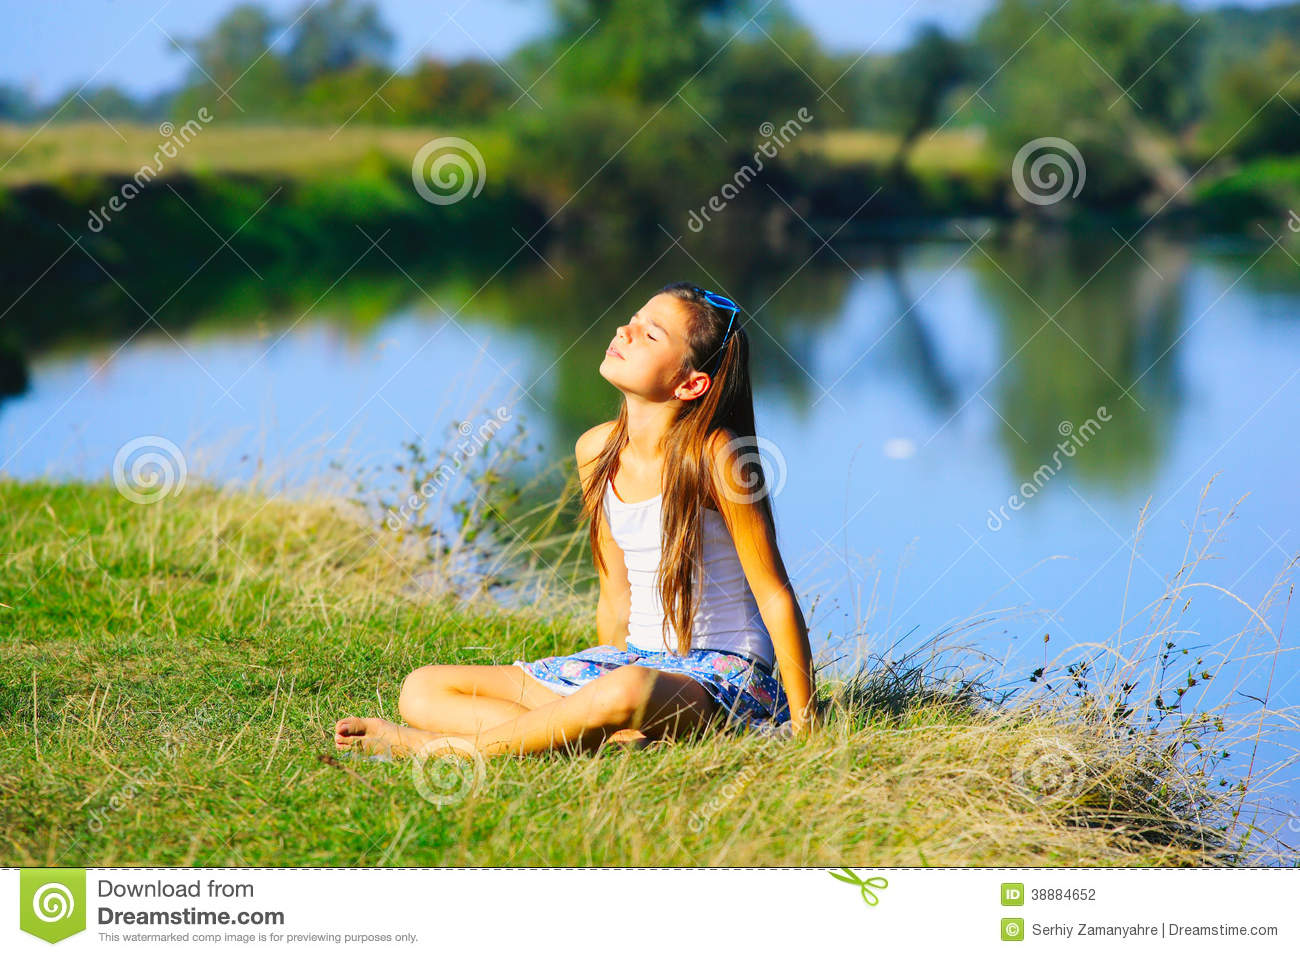 b1c2a4f5b Little Girl Sitting By The River Coastline Stock Photo - Image of ...